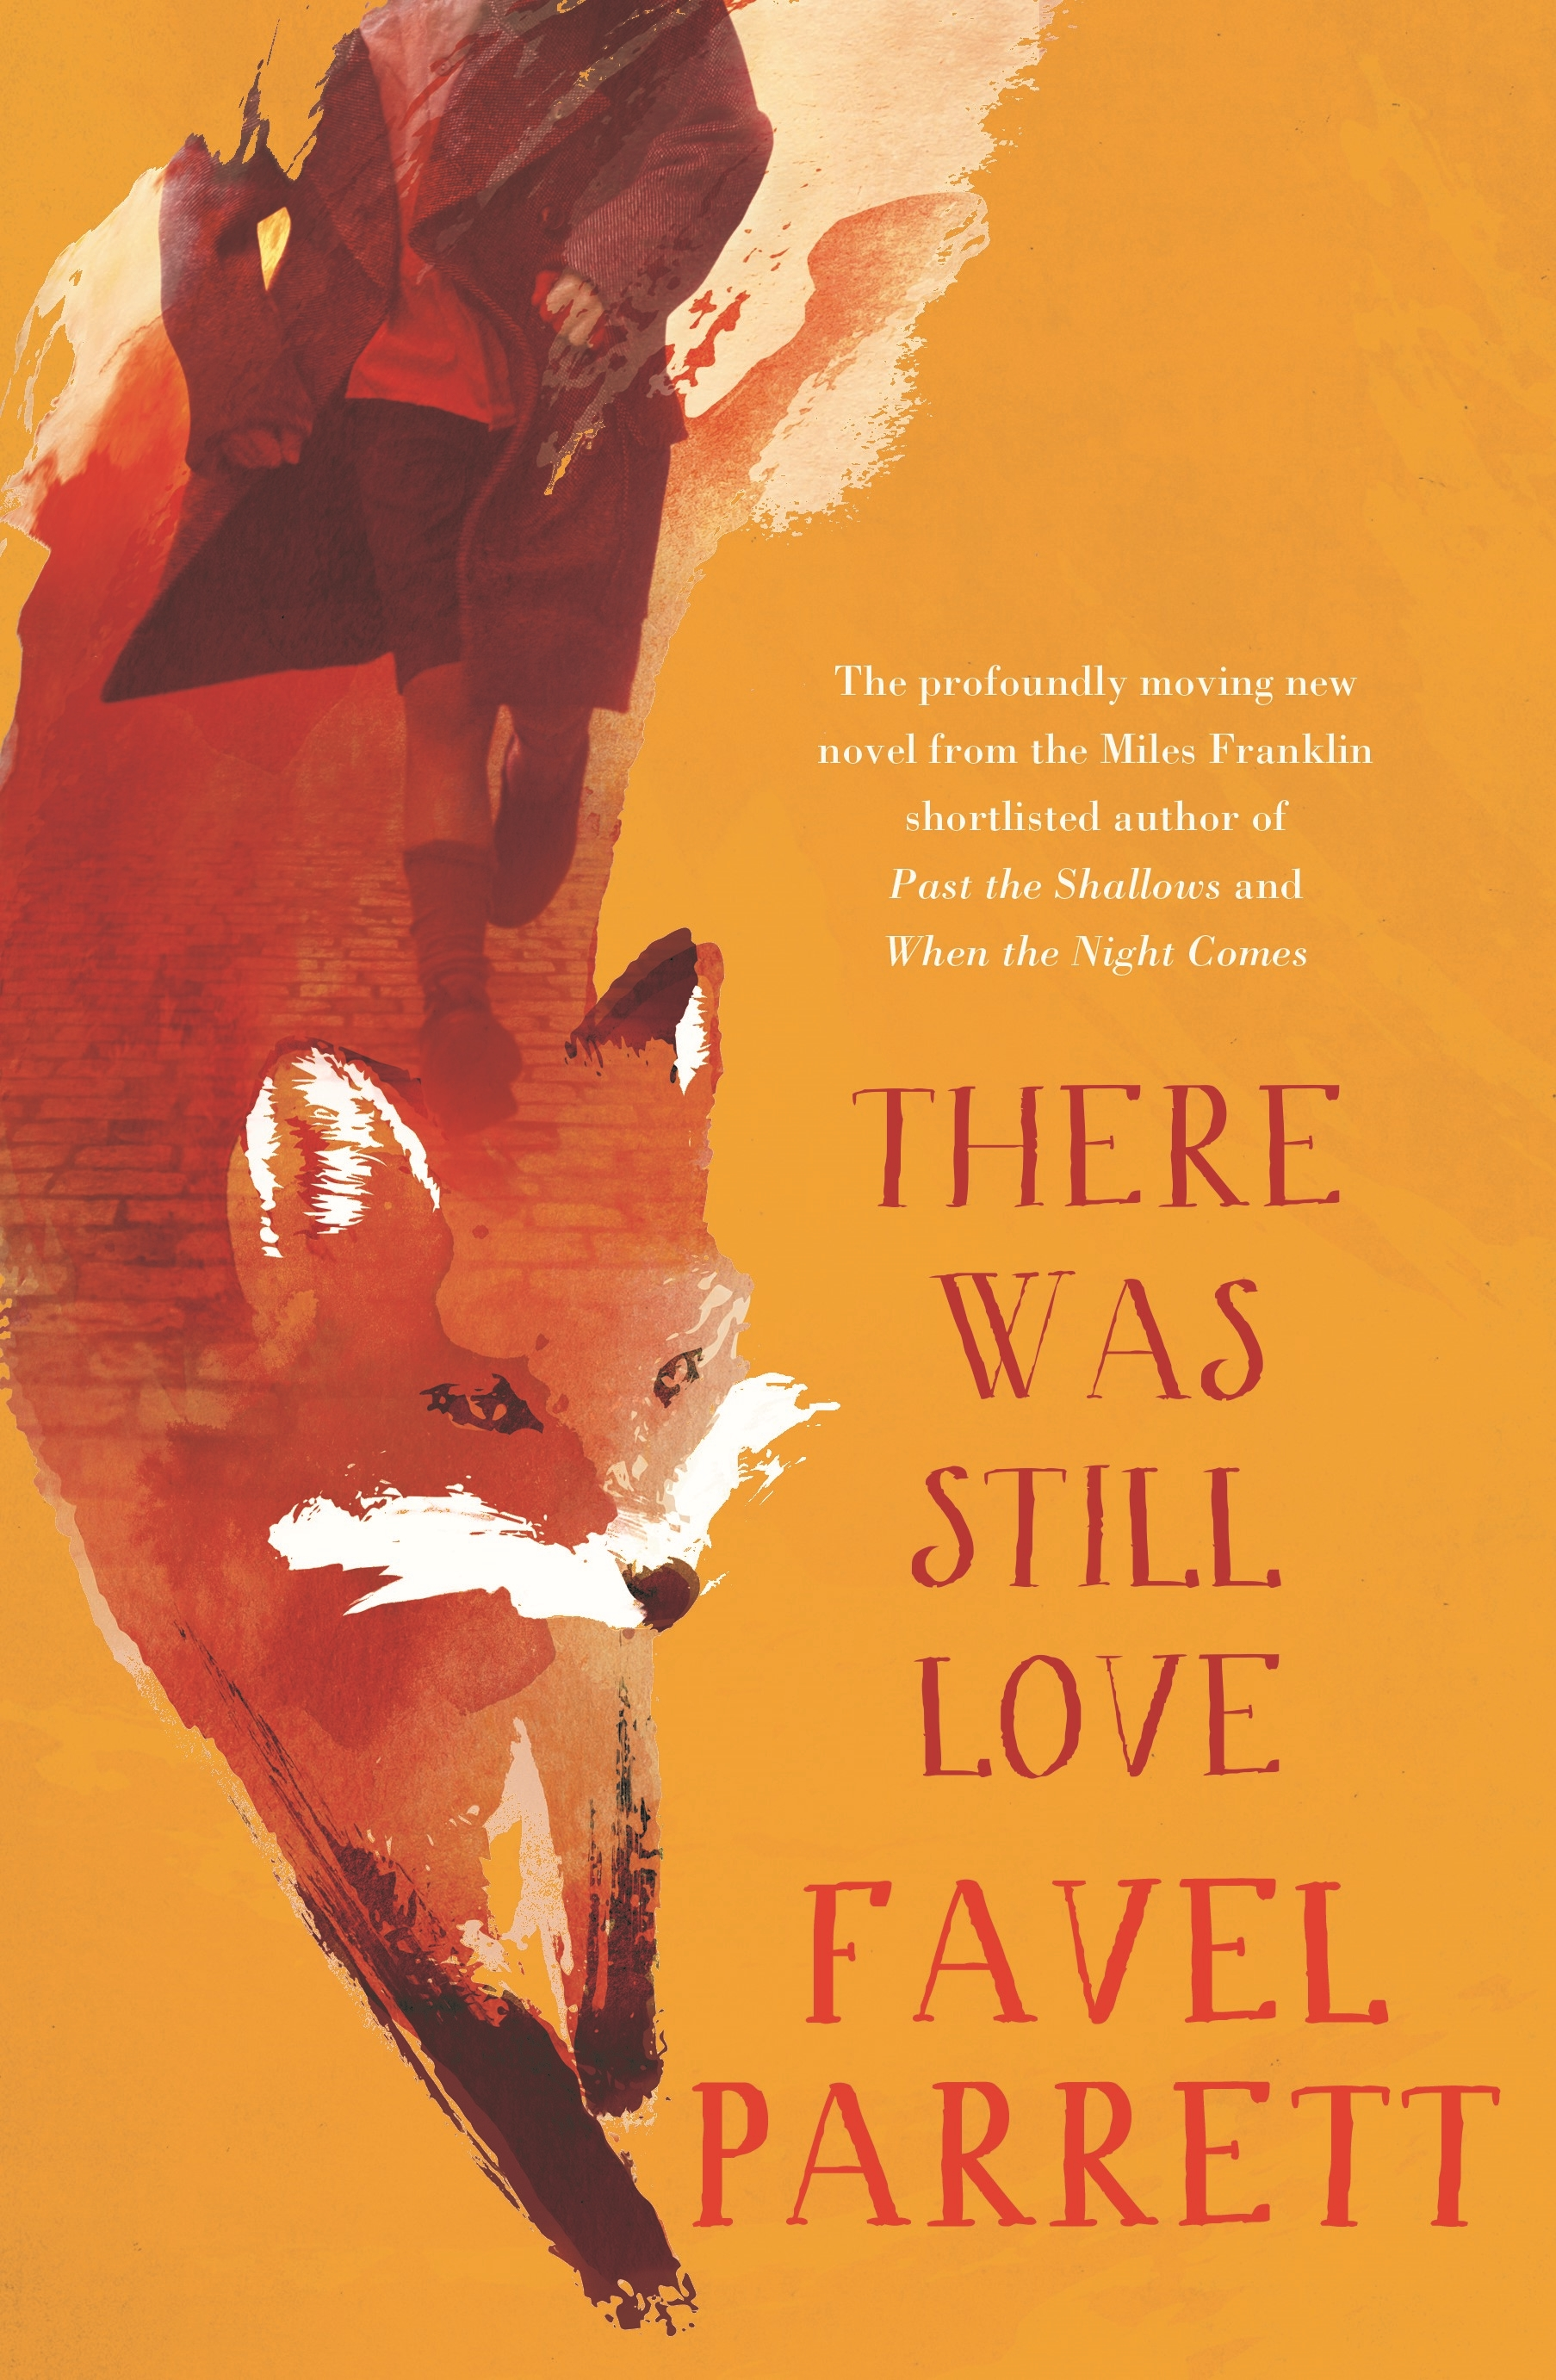 There Was Still Love by Favel Parrett book cover featuring an illustration of a red fox